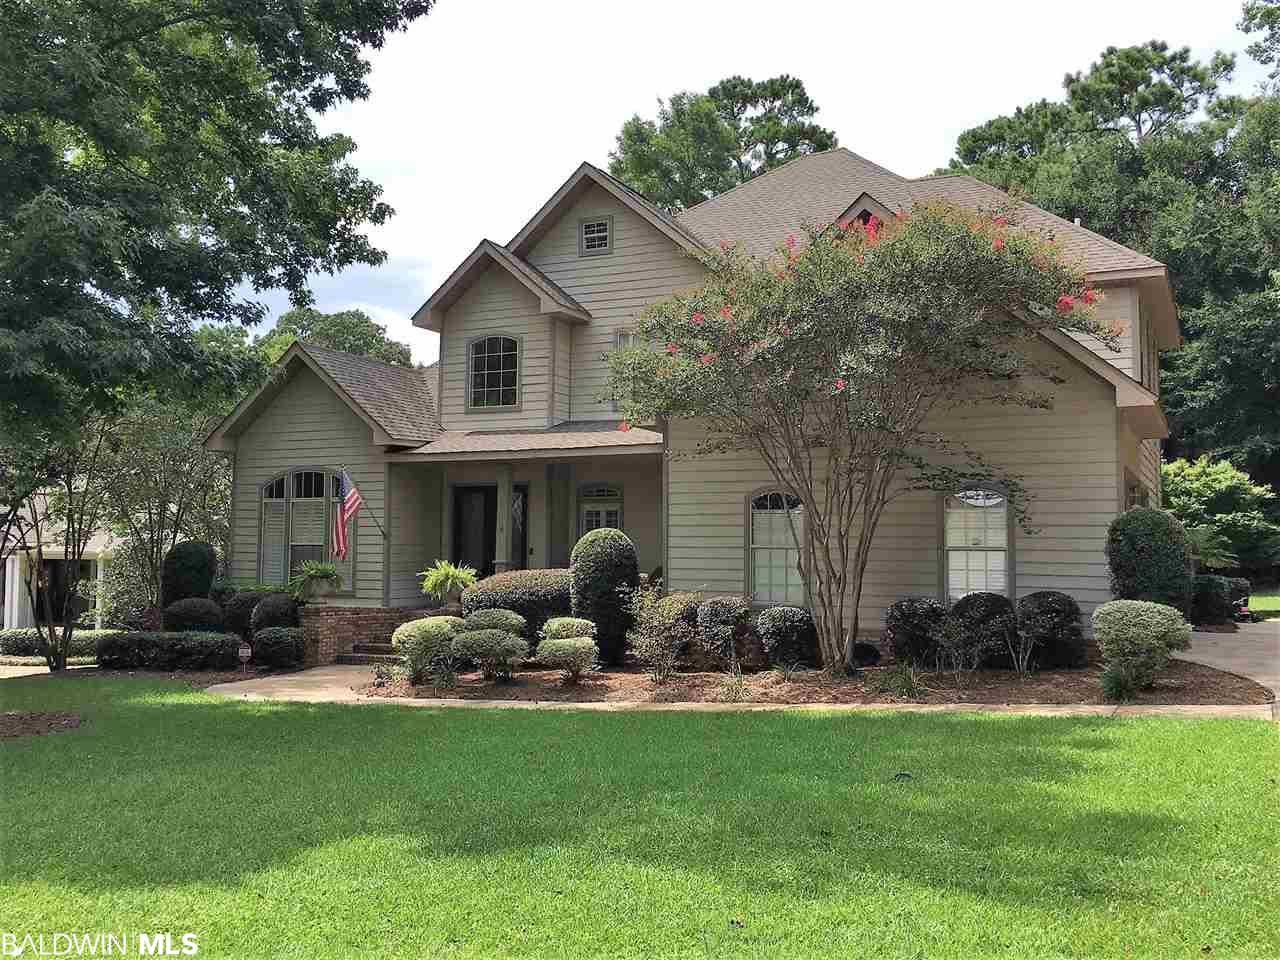 "It is all in the details.  Bay side of Olde' Daphne. Walk to the Bay.  This custom designed & built home is embraced by sweeping oaks & magnolias. Located on a quiet cul de sac with a small enclave of custom built homes. Cement board & brick facade.  A flat back yard that backs up to natural green space.  Put in a pool. 10X10 pergola with a tin roof and twinkle lights to listen to the beauty and peace of nature.  Back yard also has a covered porch and elevated deck for entertaining. Vines of jasmine wrap around the deck railing.  The front porch has a covered seating area.  Chicago brick columns & steps. Double custom mahogany & leaded glass doors great your guests. Front and back grand staircases is the wow factor you have been waiting for. Grand Foyer with soaring 20' ceiling.  Library/office and formal dining room.  Take notice of the wainscotting. Great room is centered by a gas fireplace and flanked by double french doors with transoms to your outdoor back space.  Morning room overlooks the garden.  Stainless kitchen with gas stove.  Large center island and a coffee and beverage station area.  2 large pantries.  Half bath located near oversized laundry room with soak sink.  Plenty of room for additional fridge & freezer.  Large master bedroom with en suite and sitting area. French doors to the outside back yard space.  10x12 master closet with built ins. Sep. tile shower with soak tub and privacy room.  Back stairway leads to a play area or computer room upstairs.  Large bonus room with built in children craft bar.  2 large bedrooms with en suite and additional bedroom & bathroom complete this area.  Lots of under stair storage & closets. 4"" scraped floors and tile in wet areas on first floor.  Whole house generator, and irrigation system,  Garage has epoxy floors.  This home is ""move in ready."""